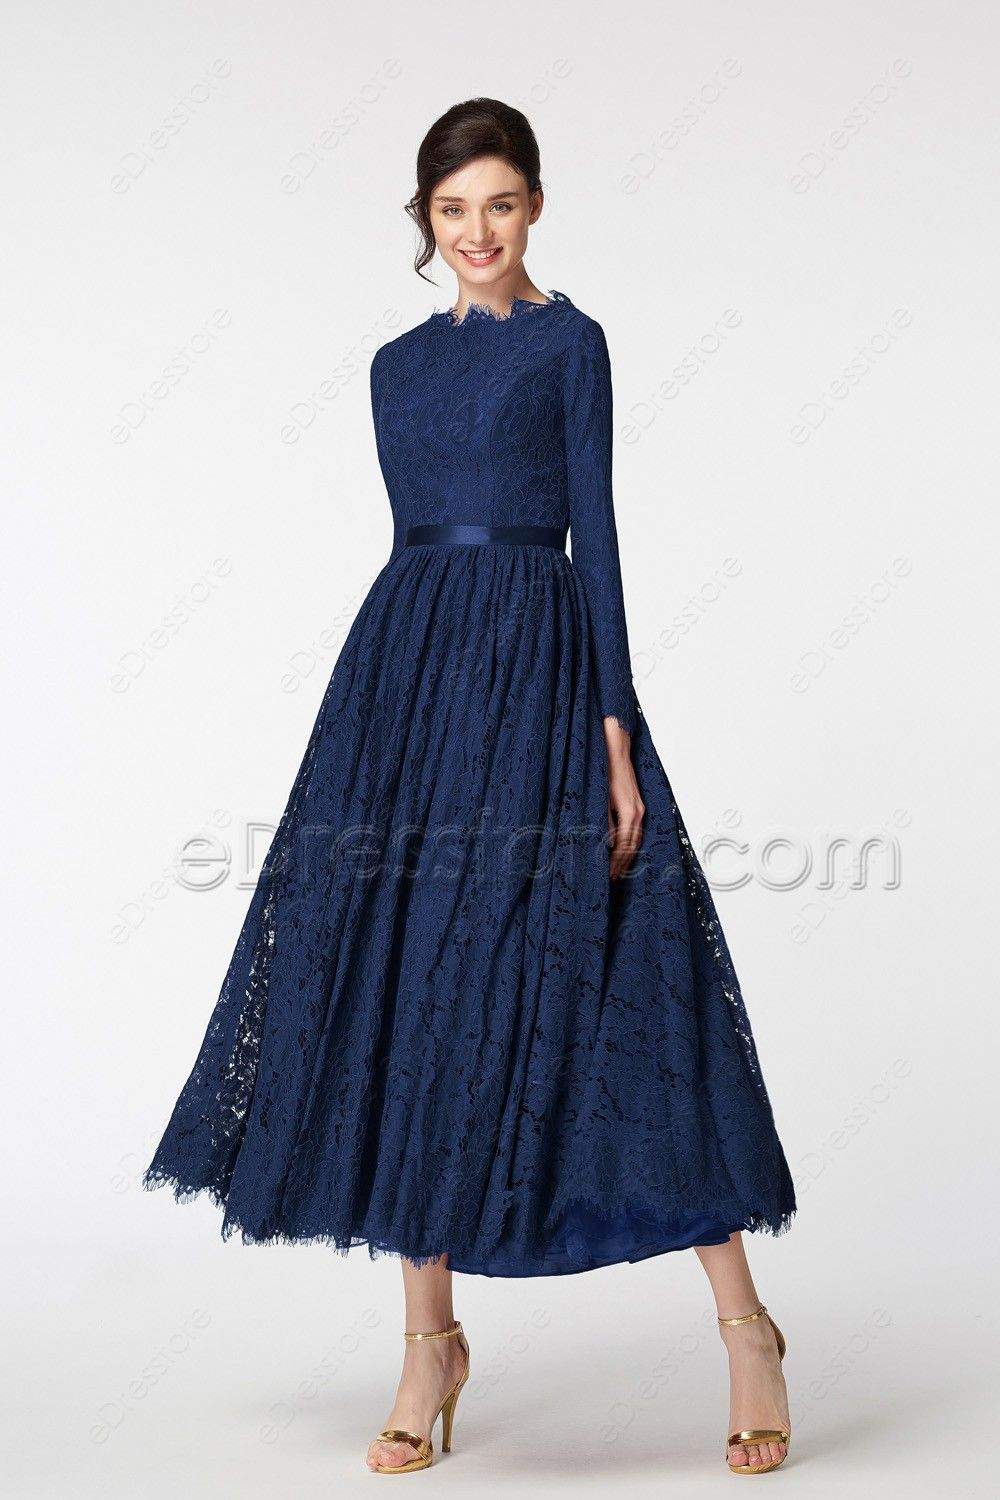 Vintage Modest Mother Of The Bride Dress Long Sleeves Navy Blue Plus Size Long Sleeve Dress Formal Long Black Dress Formal Long Sleeve Lace Dress